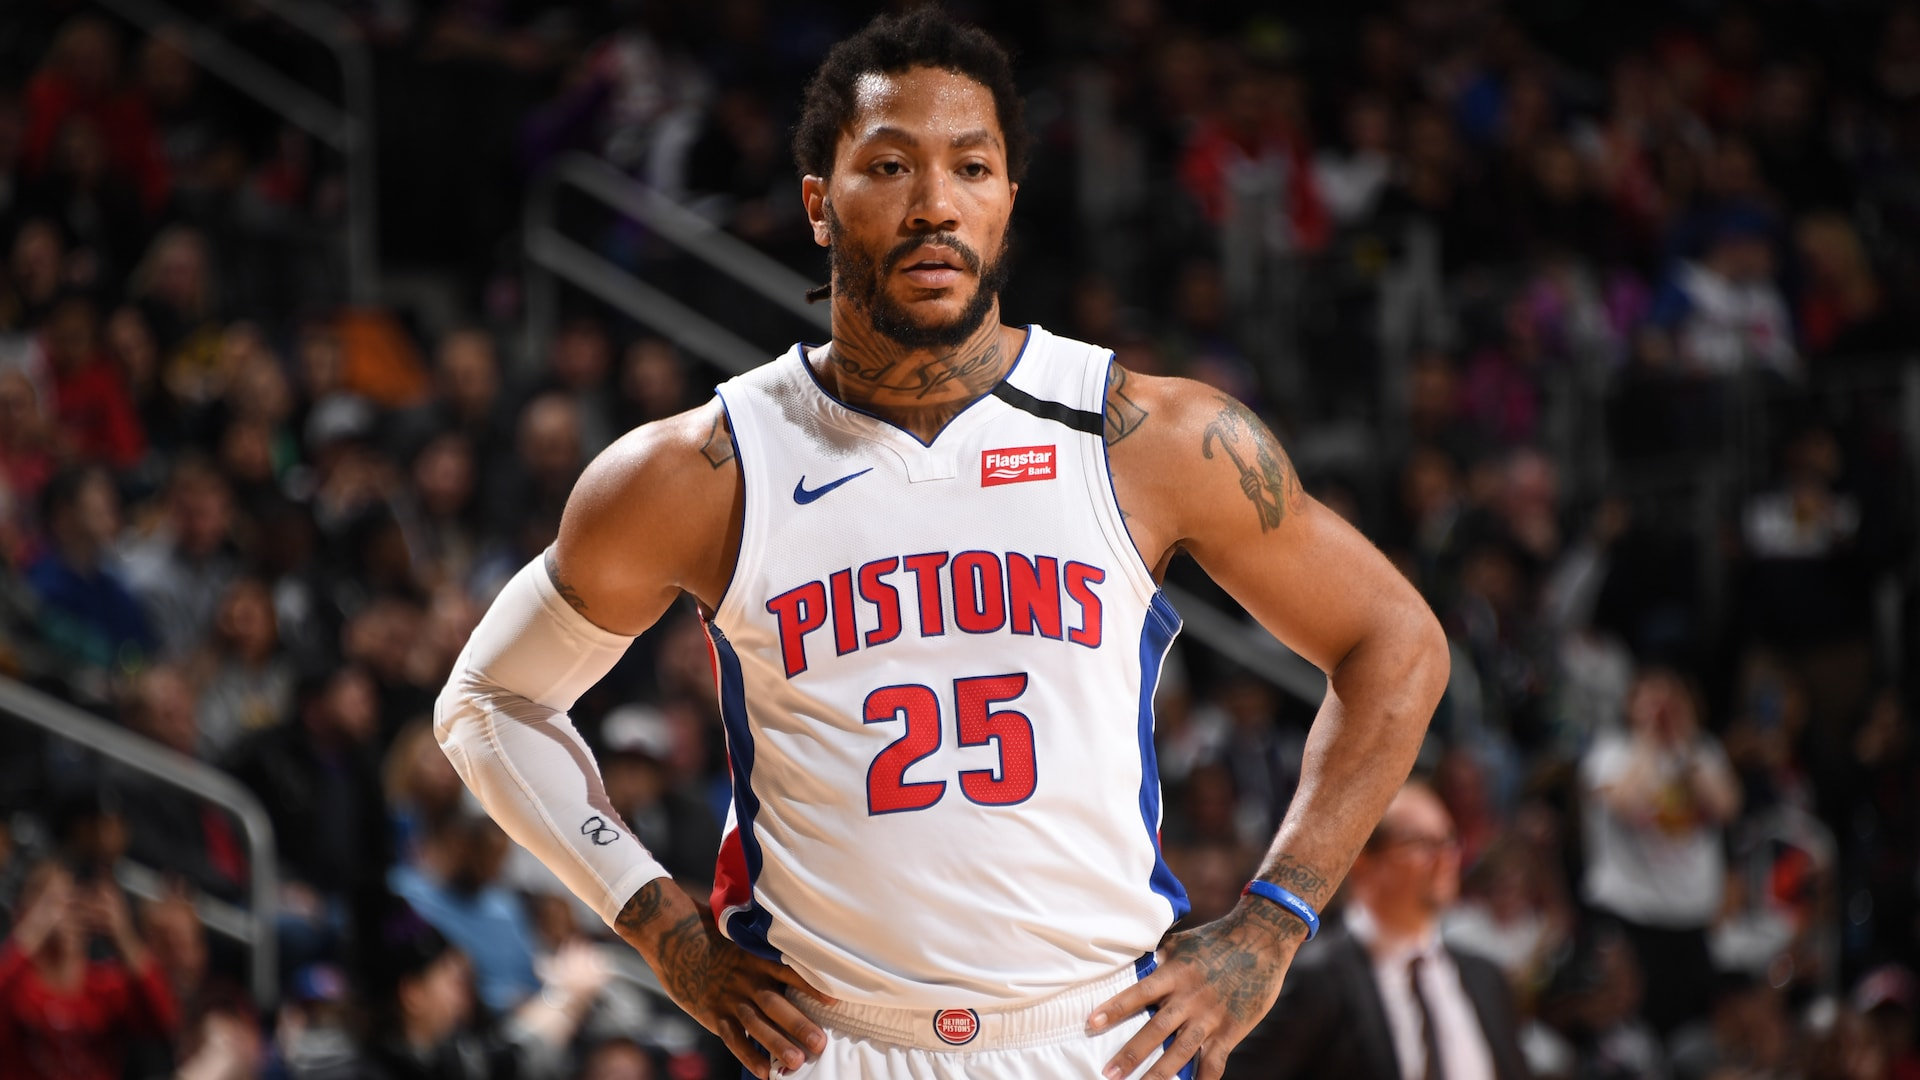 Derrick Rose (ankle) expected to miss 2 weeks